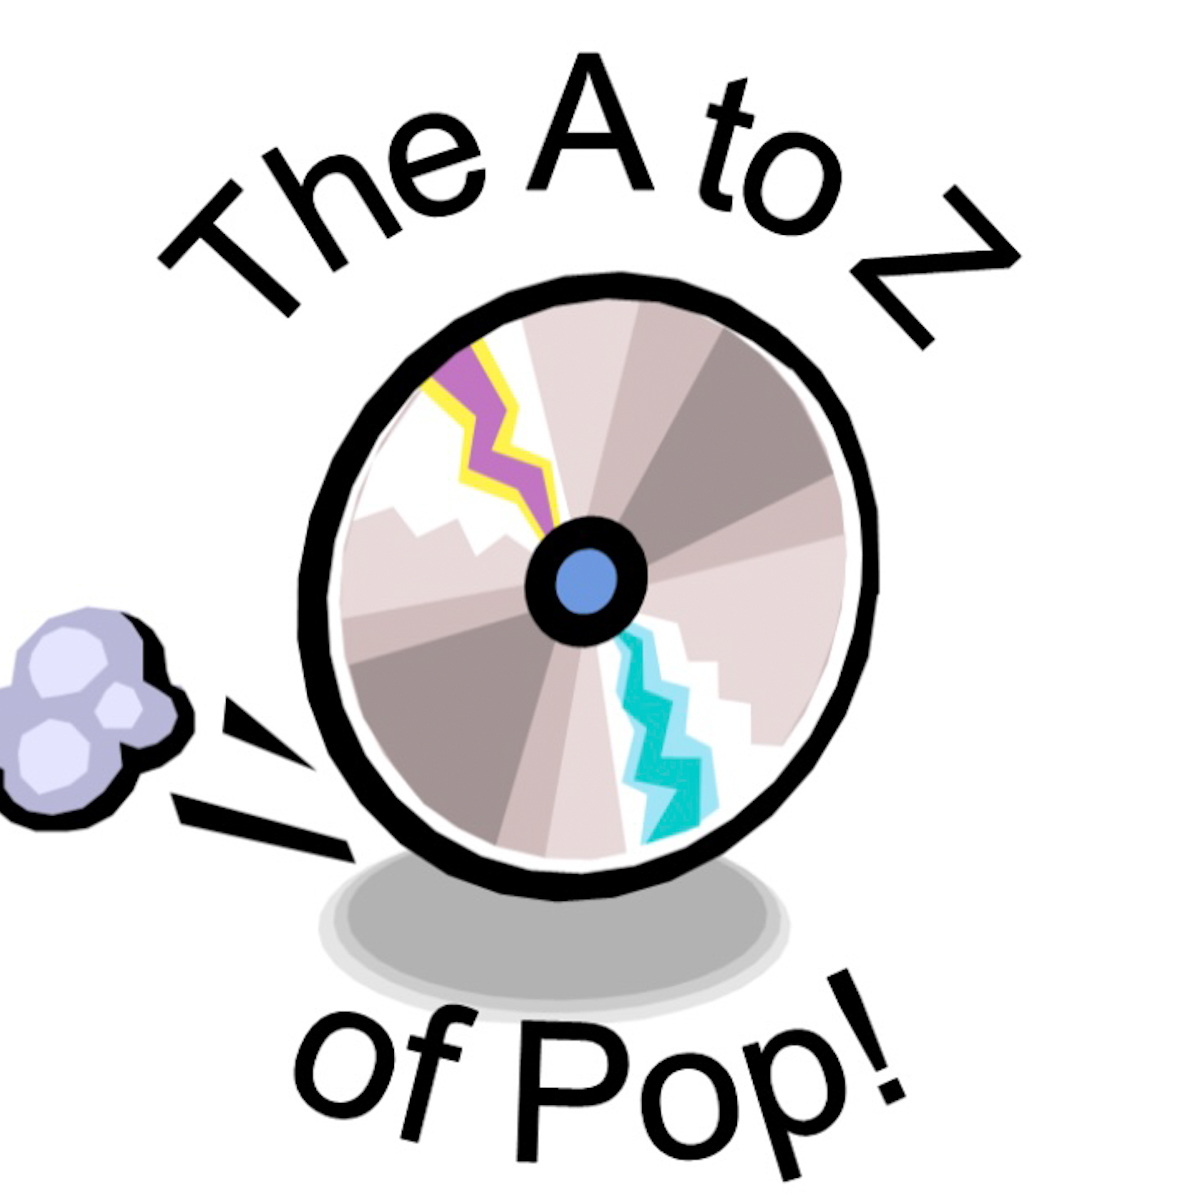 A to Z of Pop